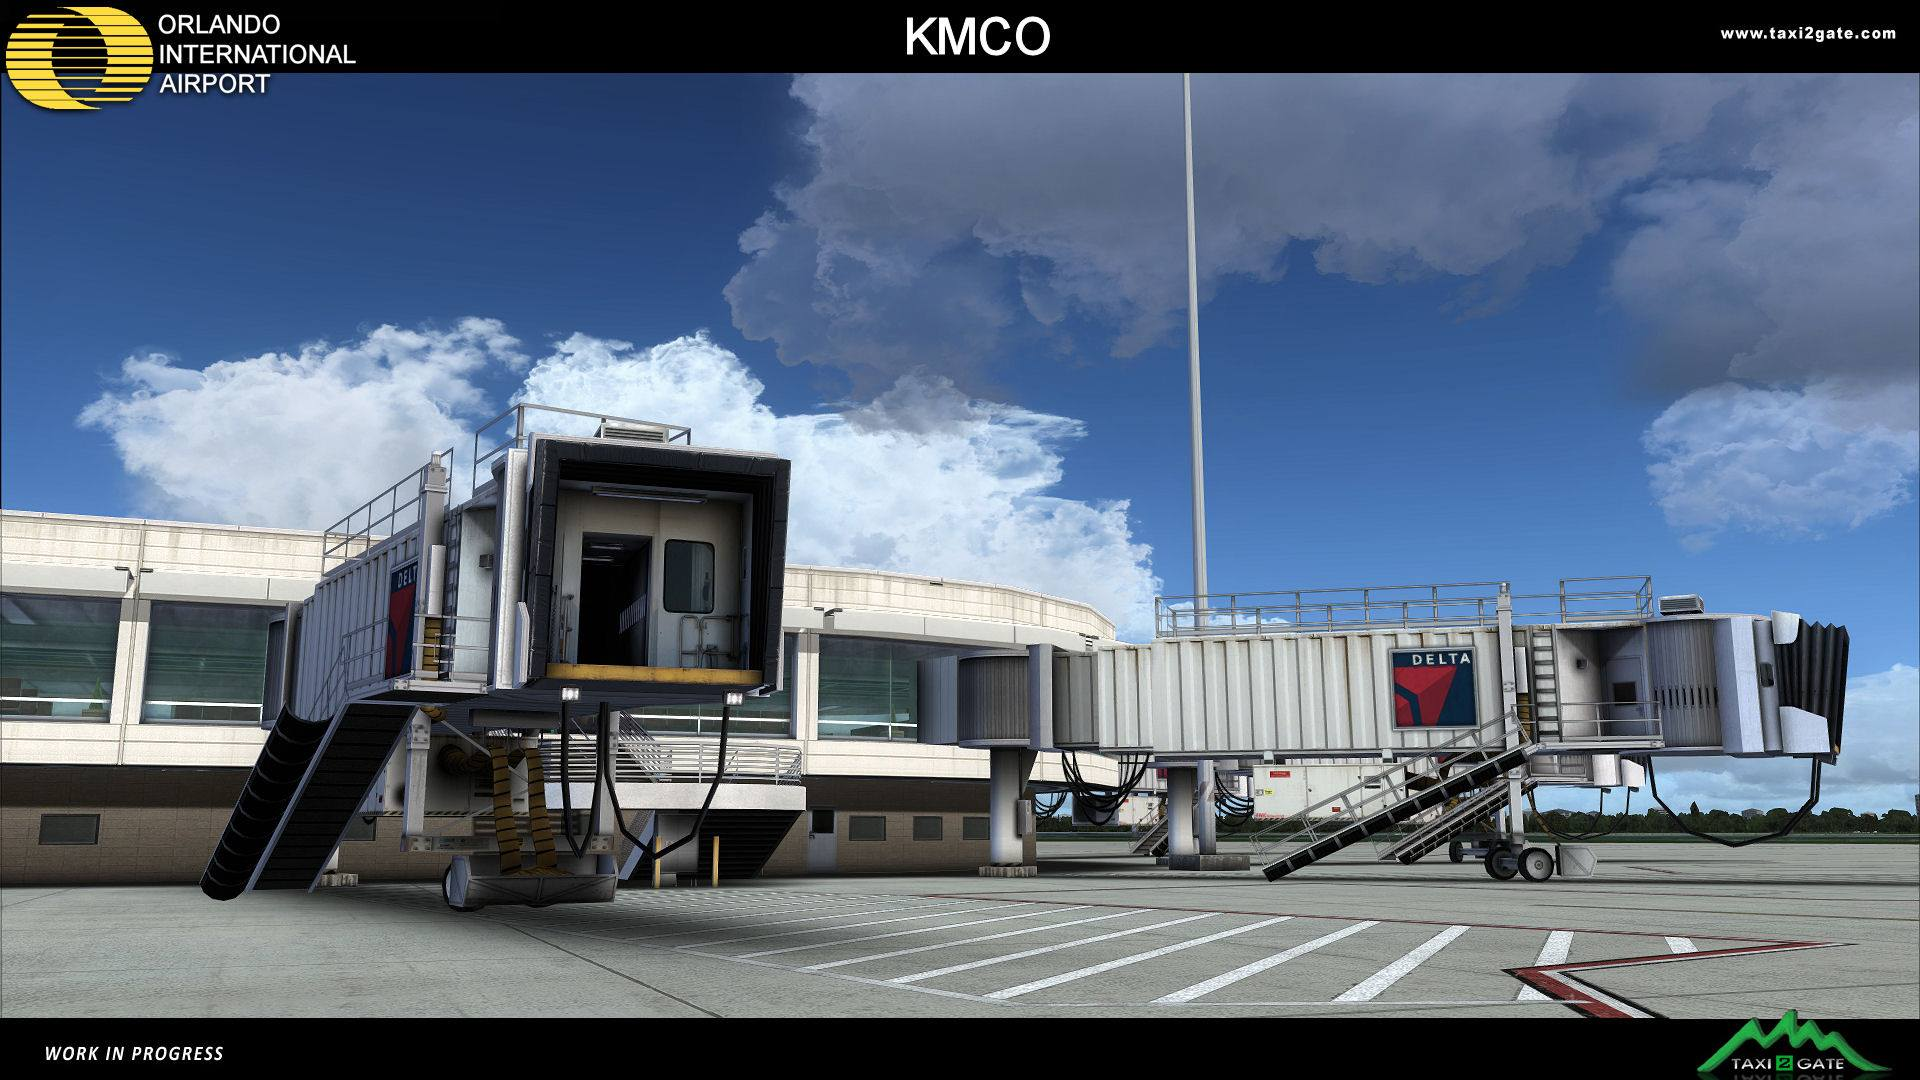 Taxi2gate Works On Orlando Kmco